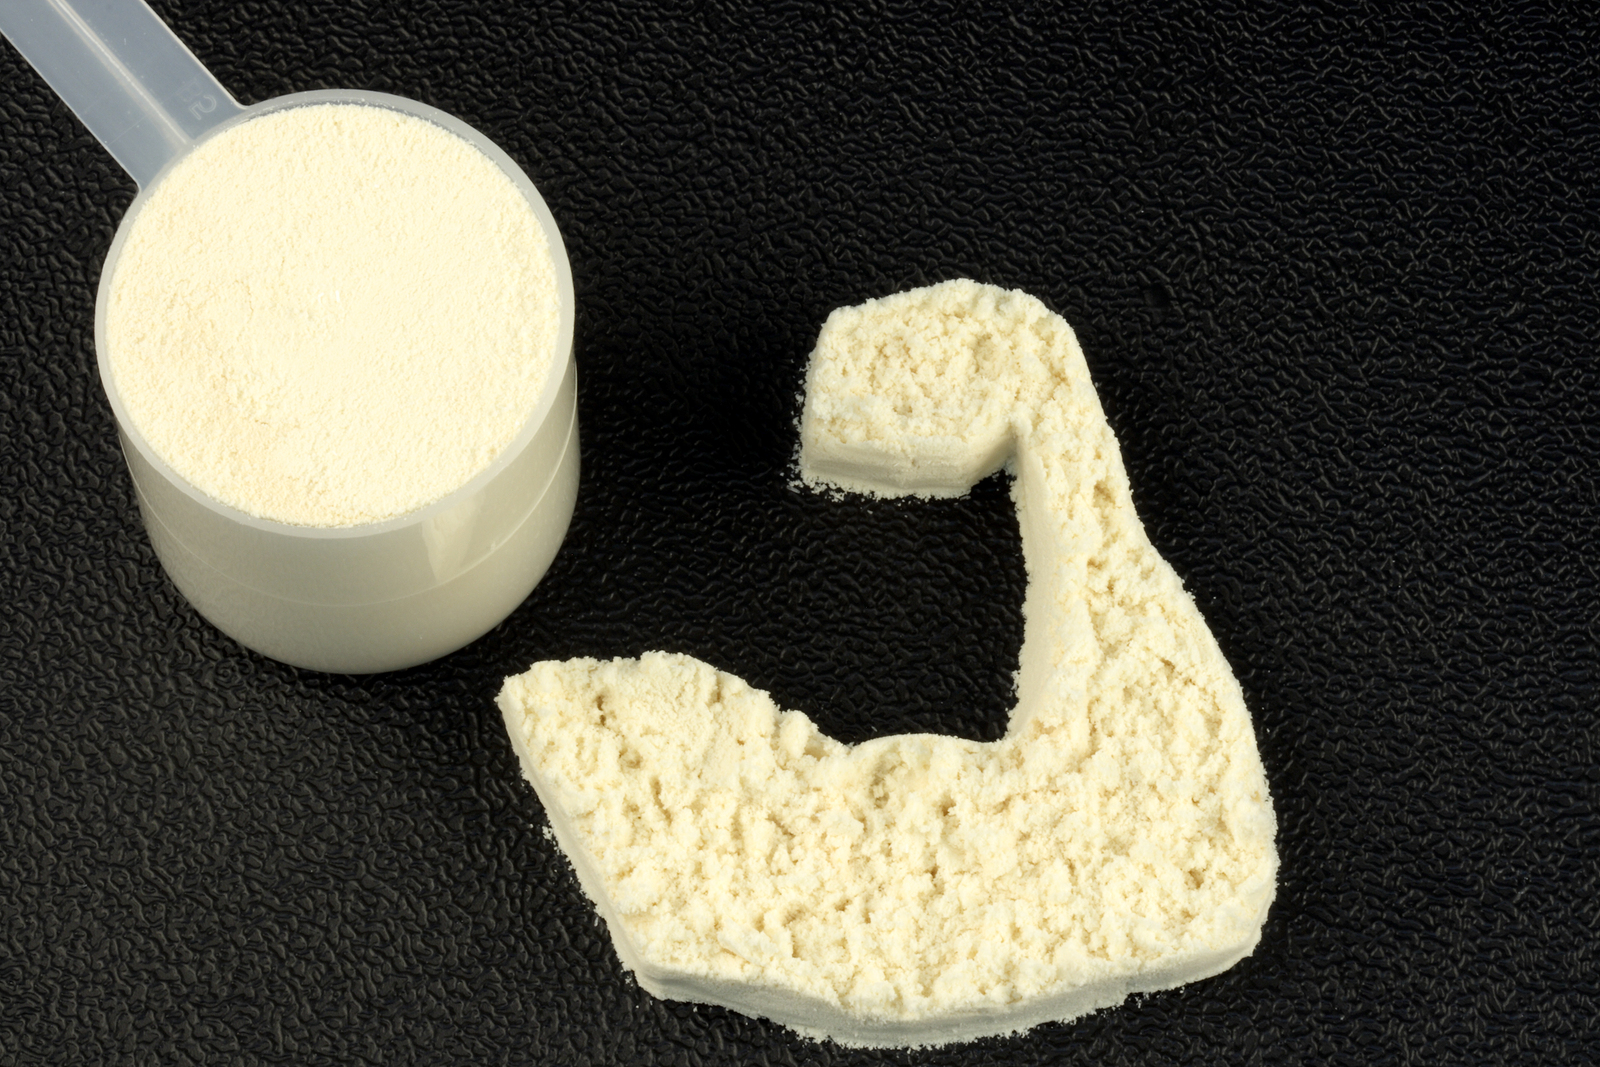 Whey Protein Pro #2: Increased Muscle Protein Synthesis Post-Workout